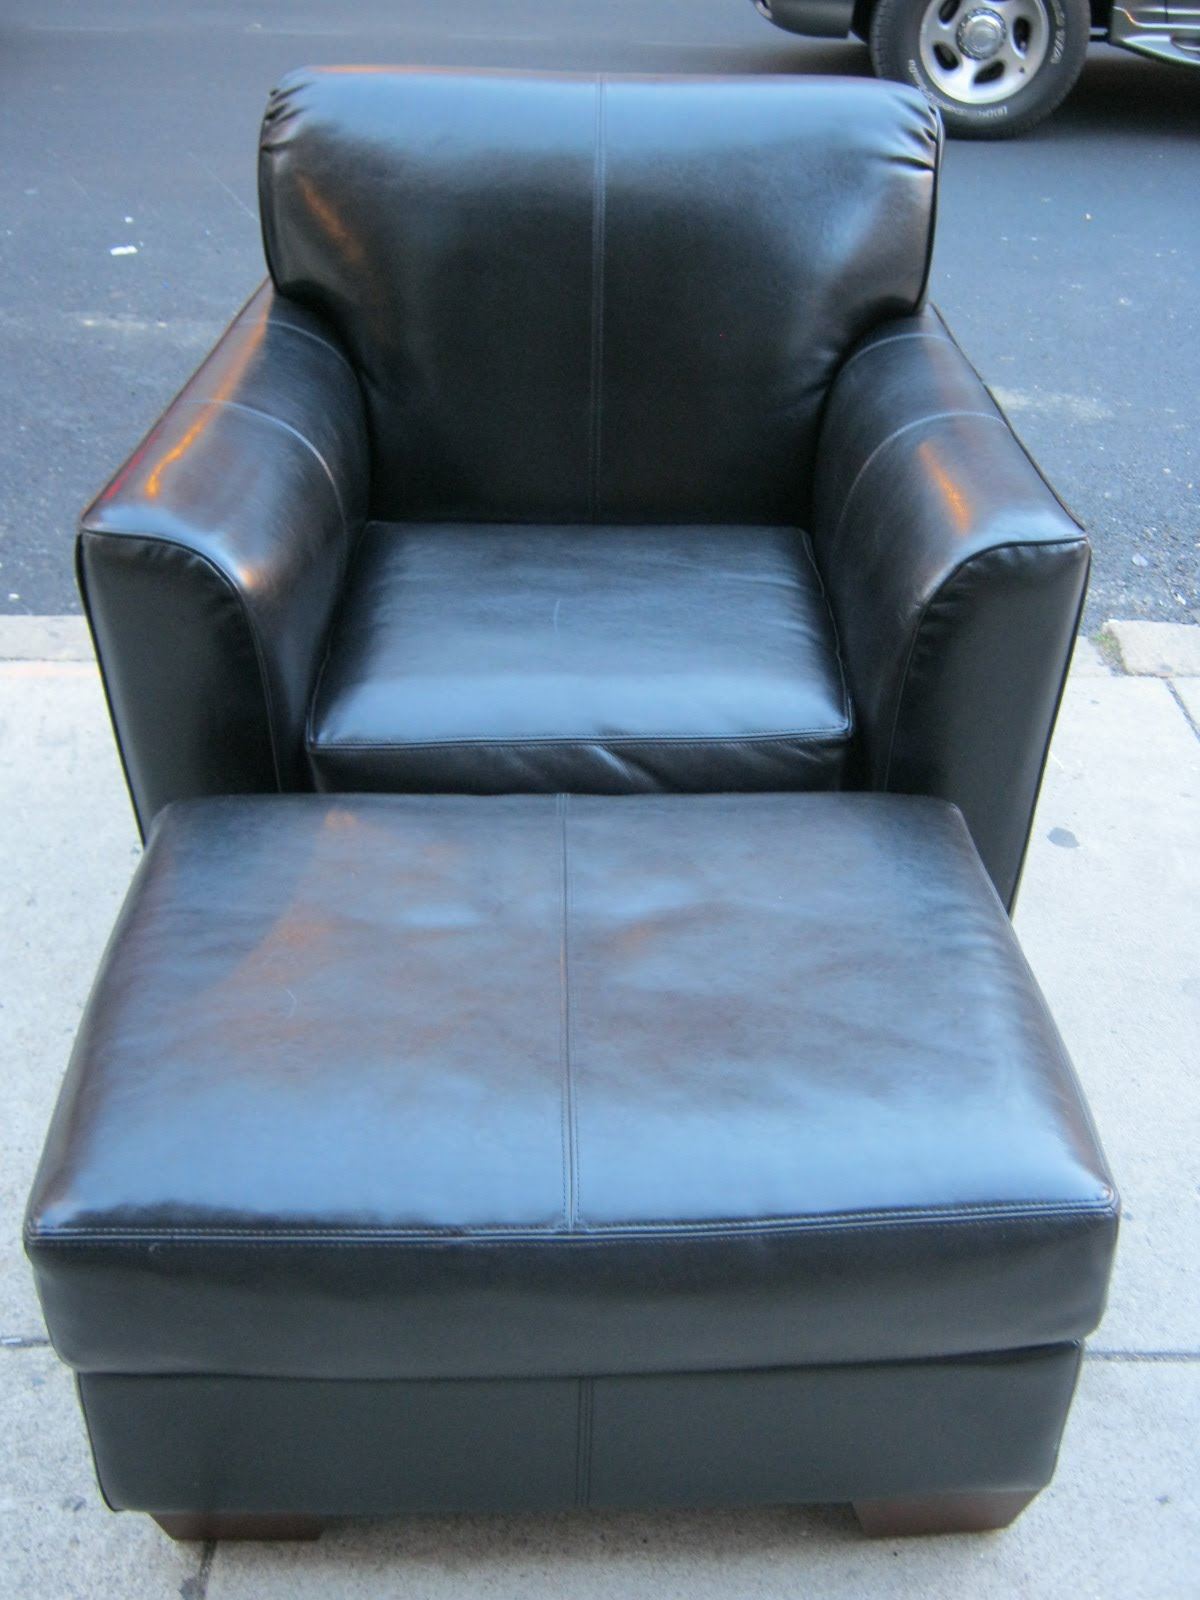 black chair and ottoman two seat garden table chairs uhuru furniture collectibles leather